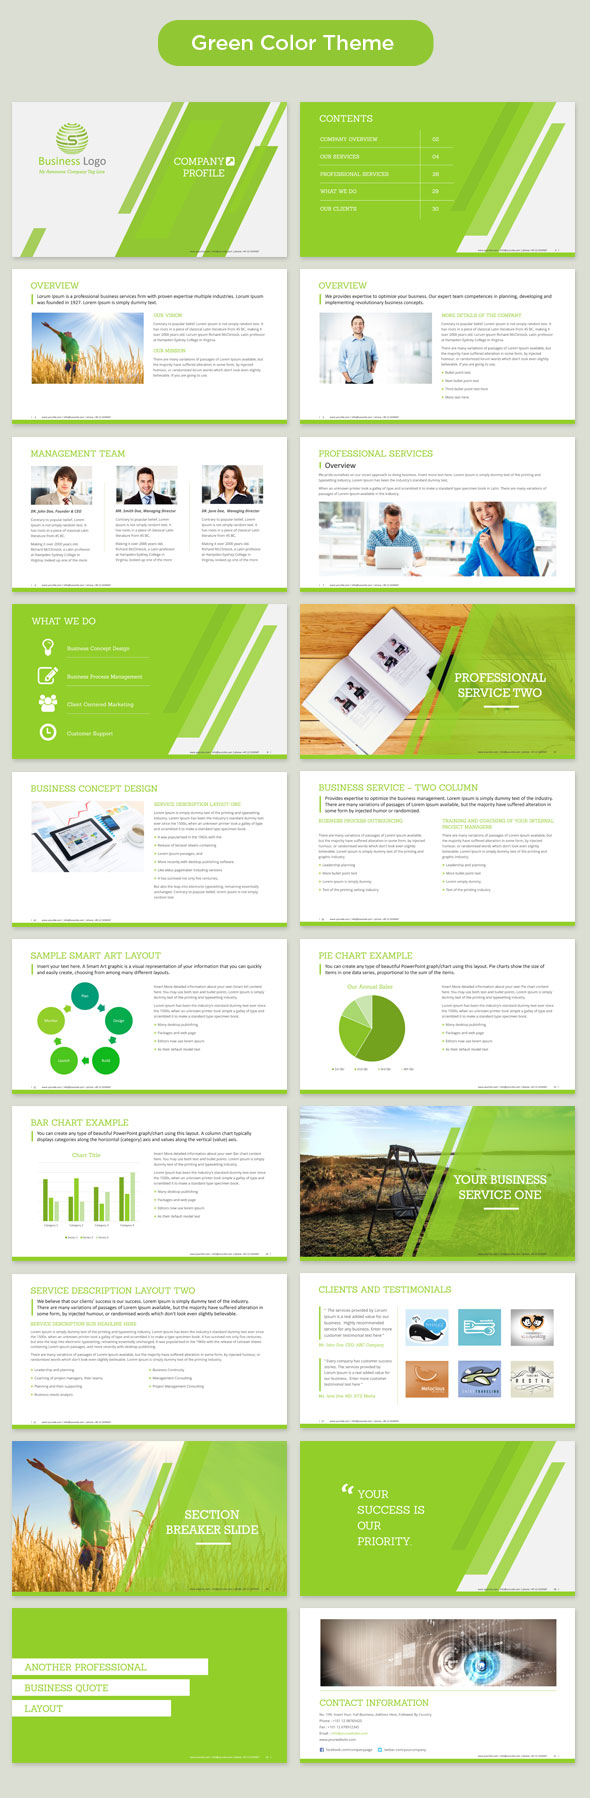 Company profile powerpoint template 350 master ppt slide templates corporate profile powerpoint template green toneelgroepblik Image collections